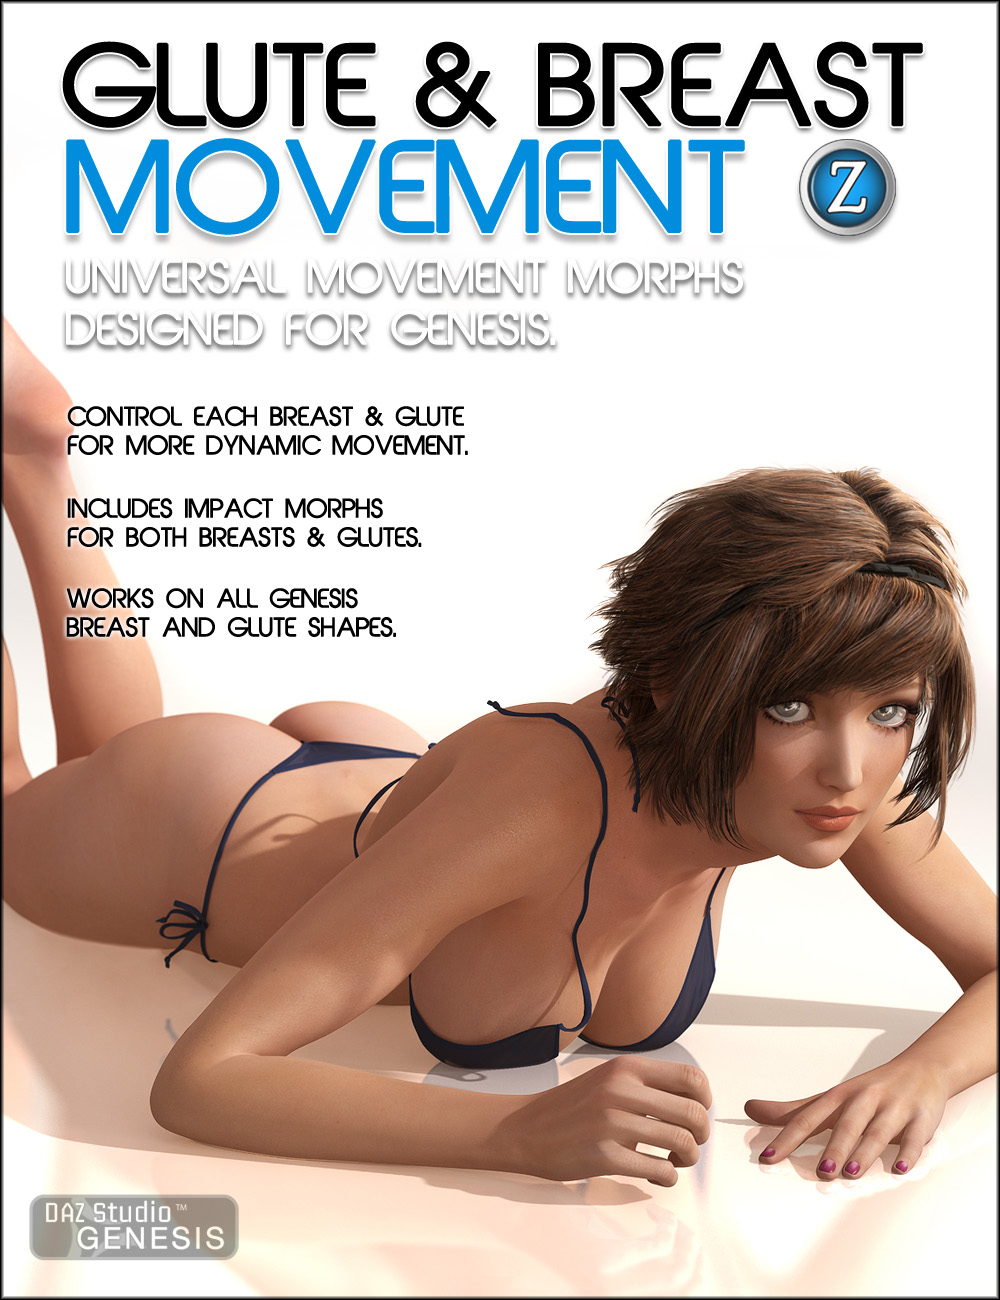 Glute and Breast Movement for Genesis by: Zev0, 3D Models by Daz 3D